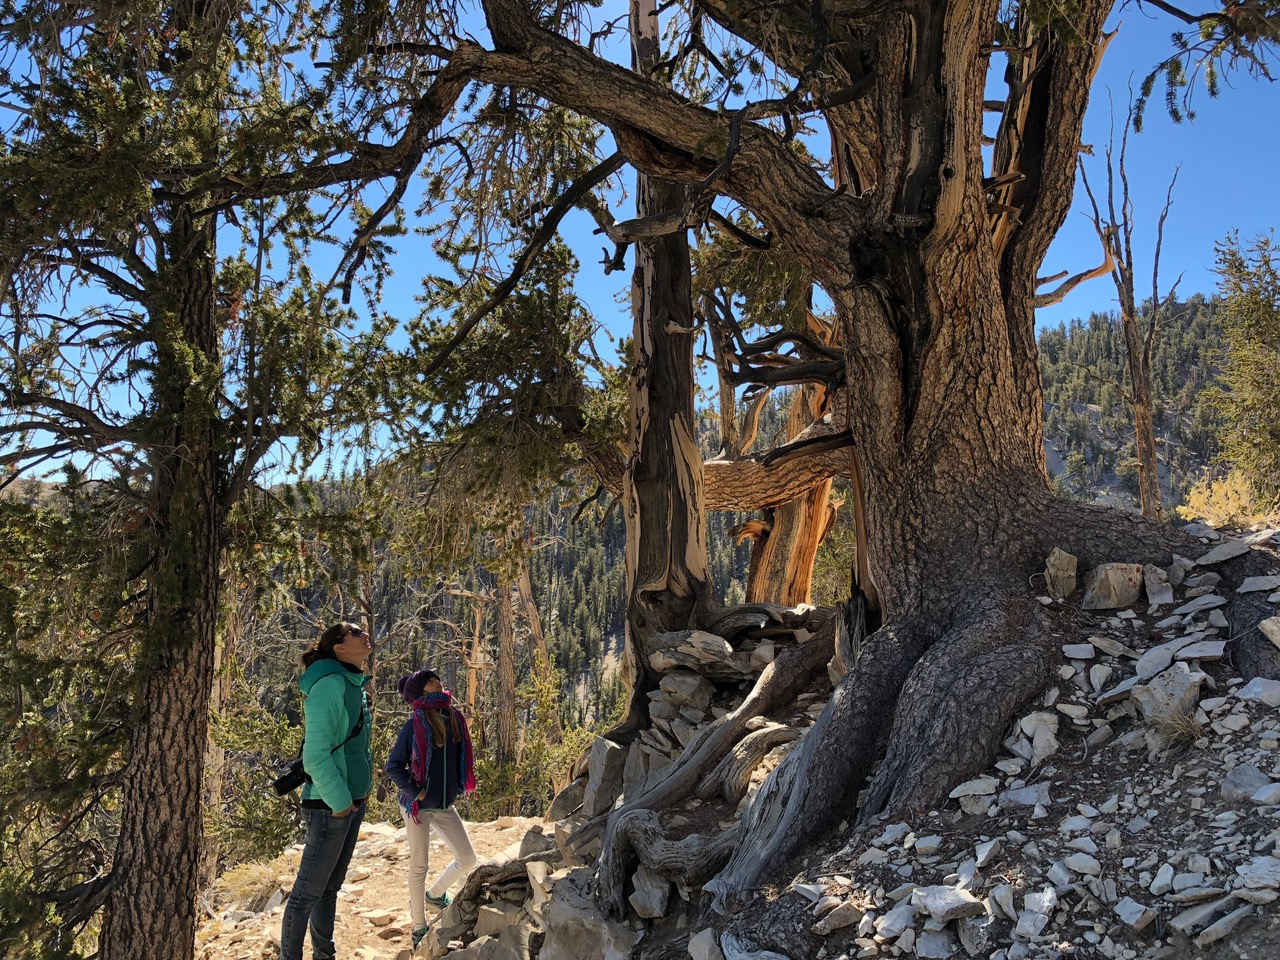 We walked through Bristlecone Forest on the Methuselah Trail